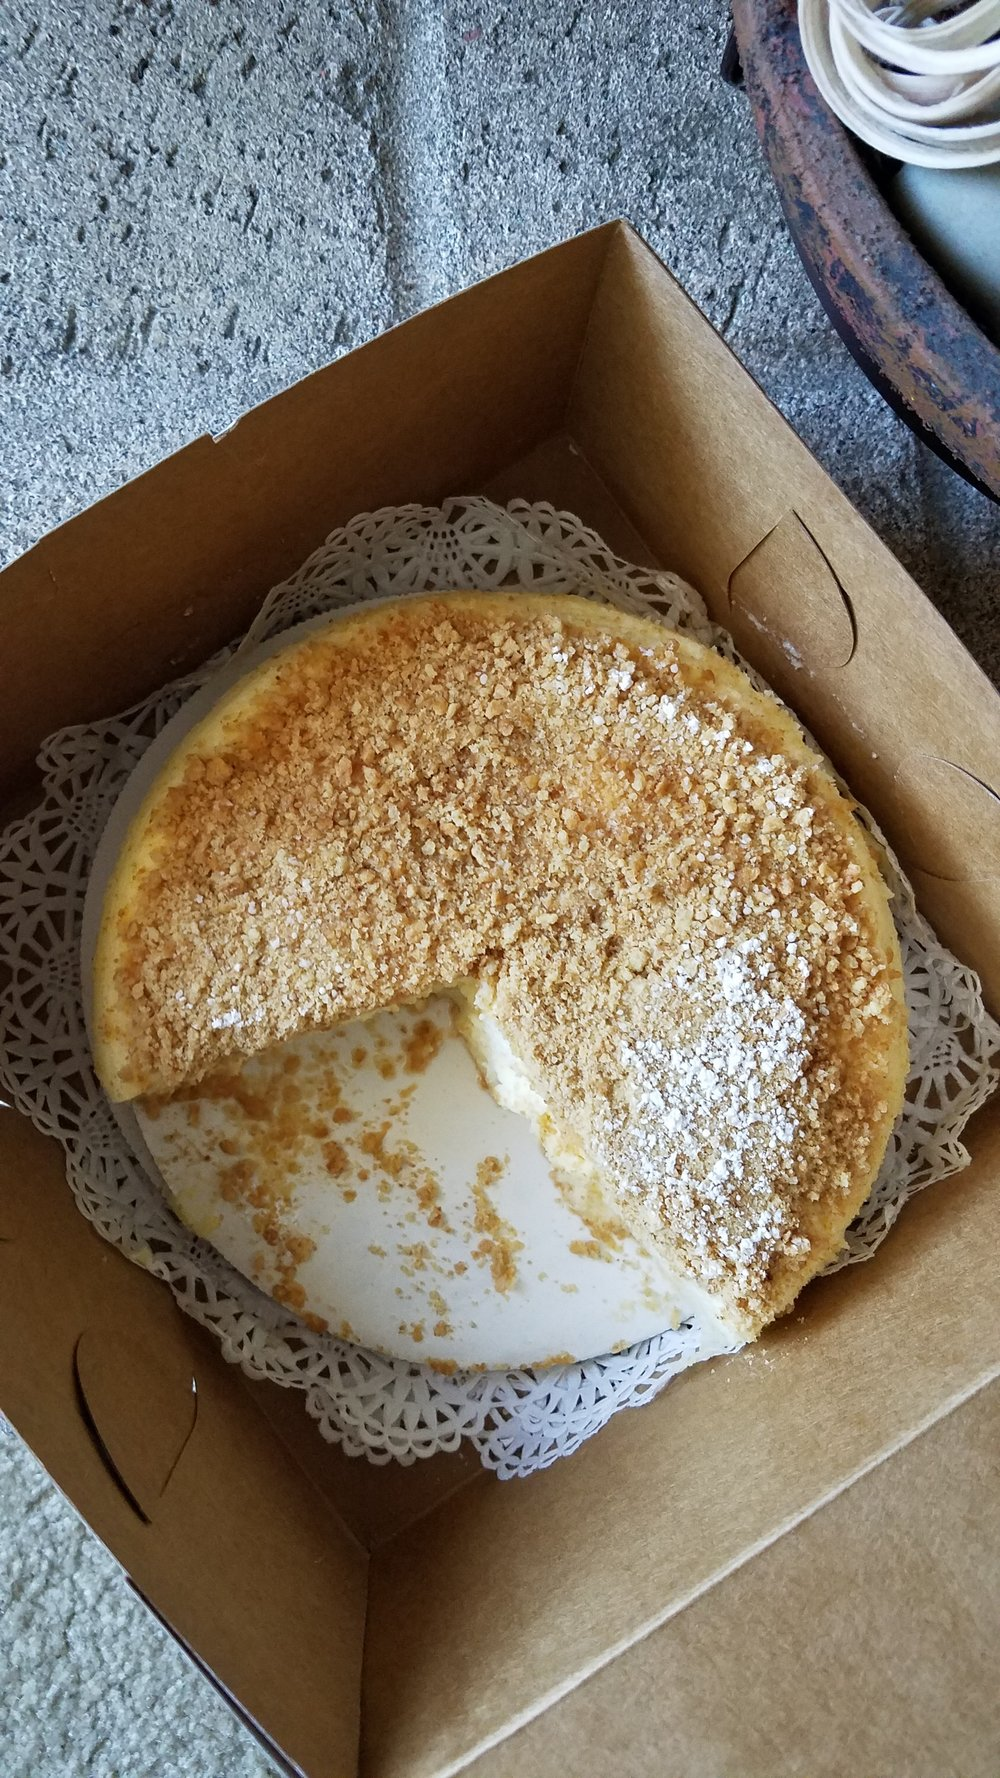 Zanze Cheesecake is amazingly creamy. My only criticism is that it is lacking a decadent graham cracker crust, which is one of my favorite parts of a cheesecake!